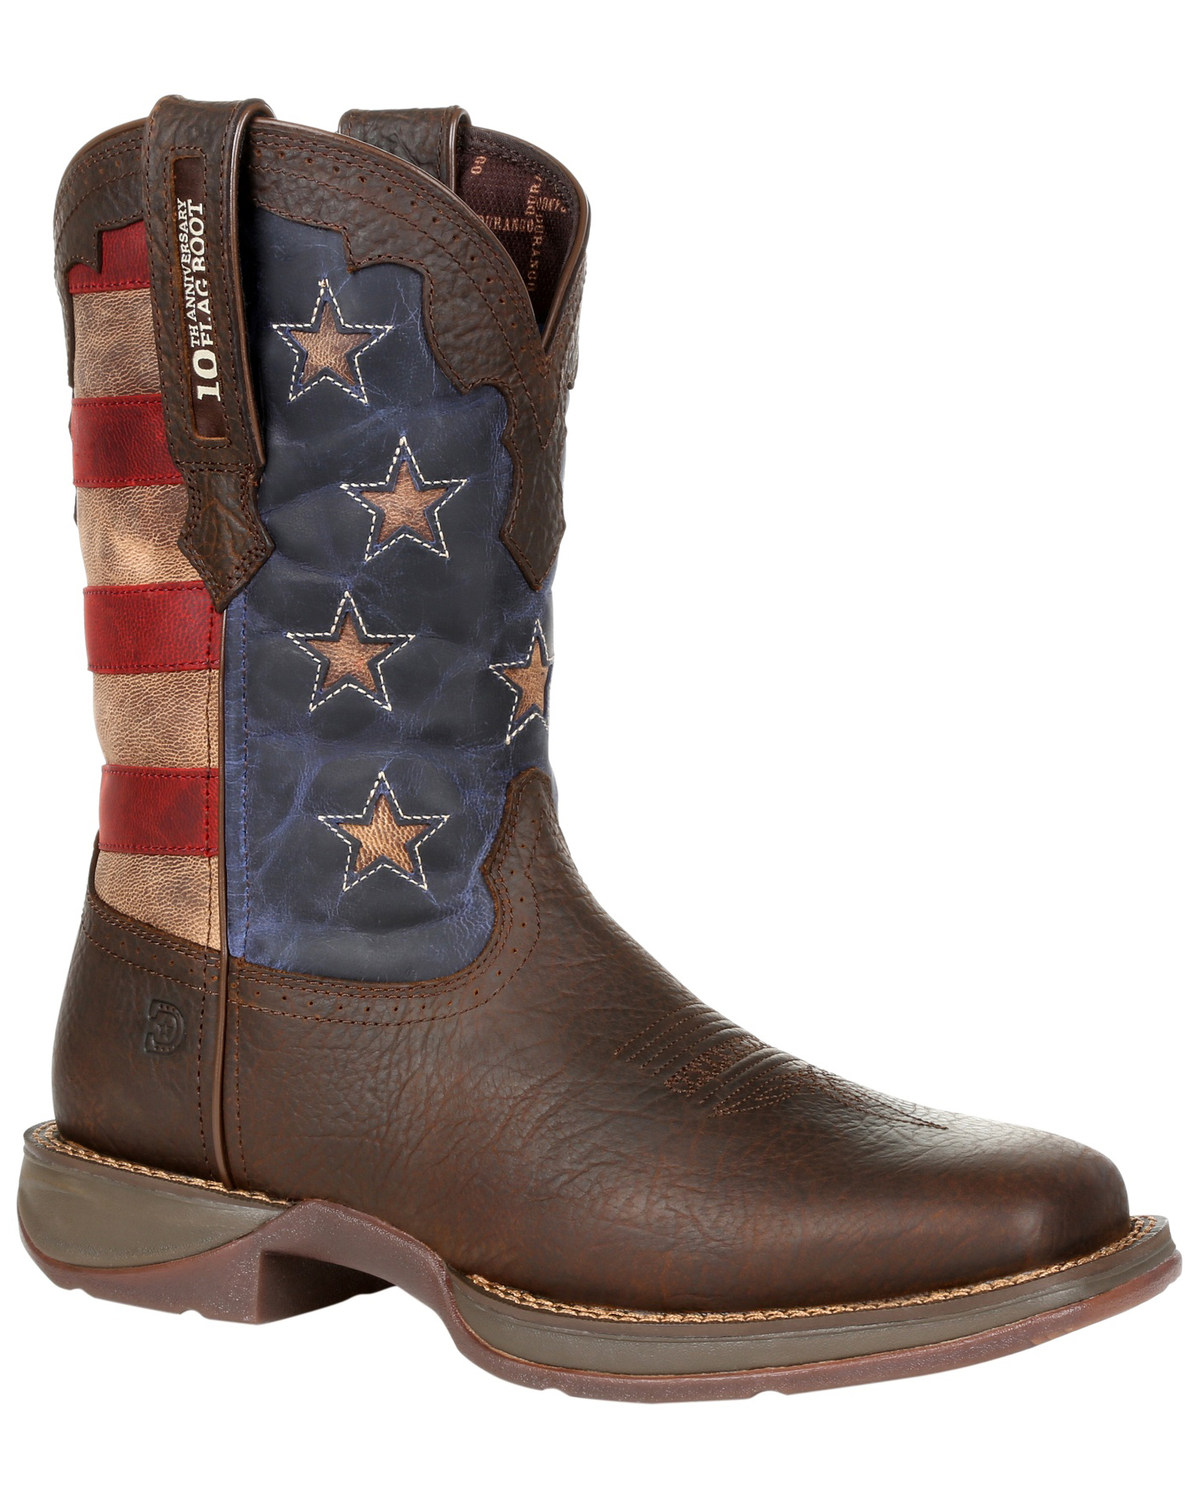 2b204f2cacd Durango Men's Red, White, & Blue Western Boots - Square Toe